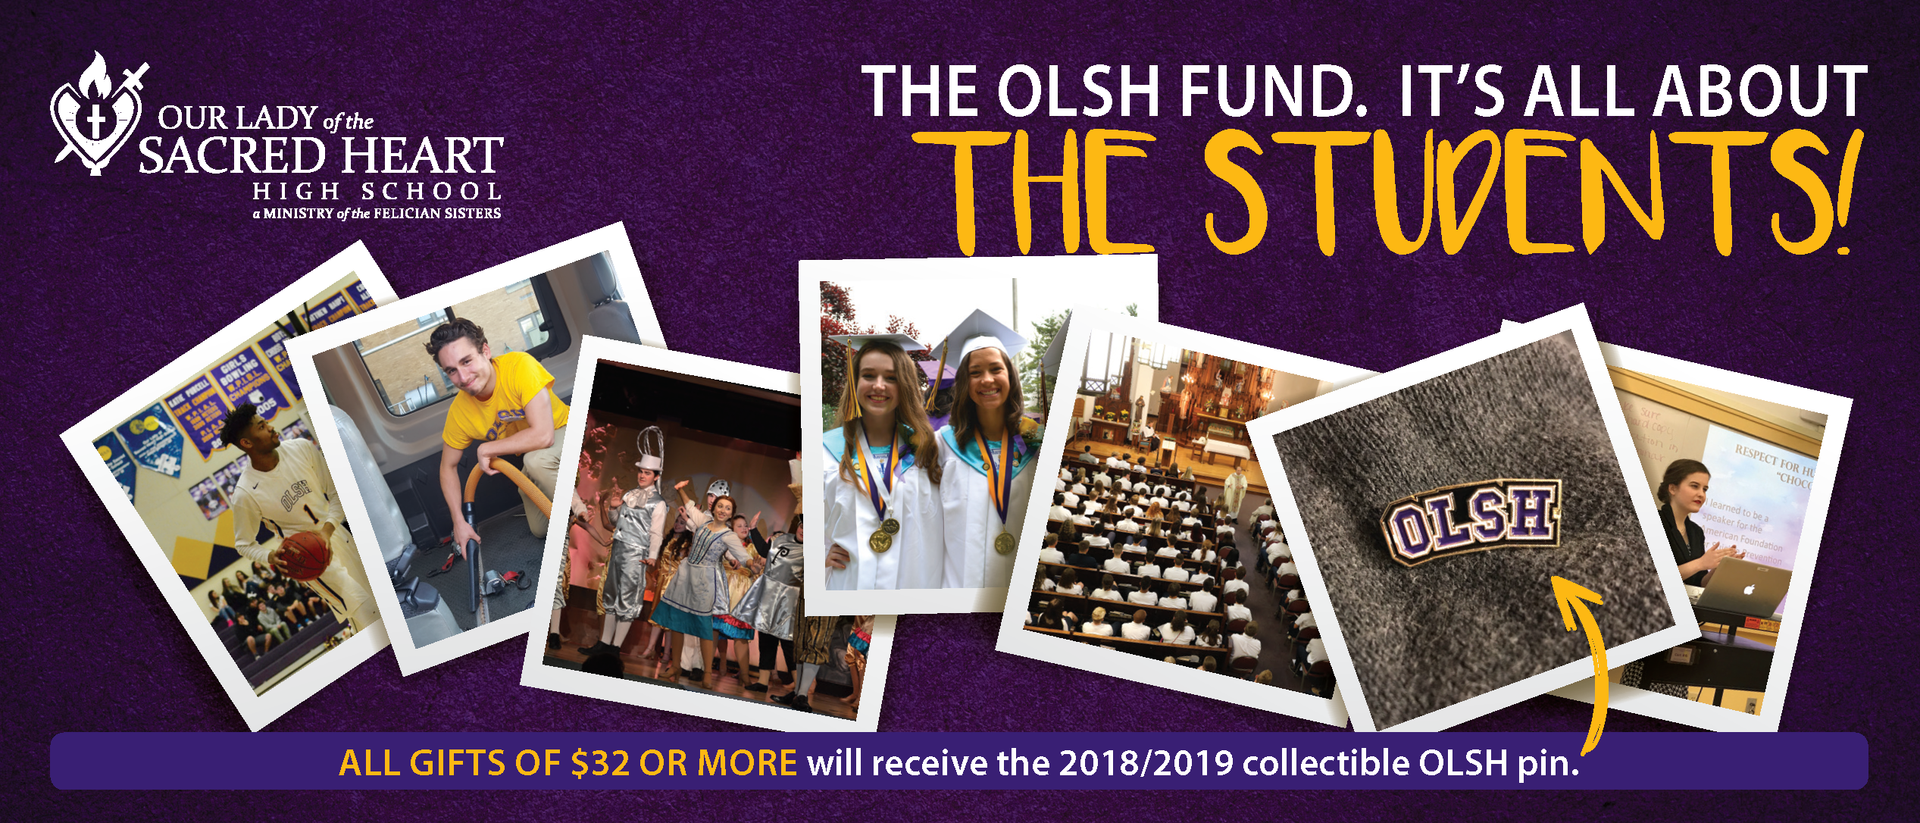 An image of several photos depicting school life and the text The OLSH Fund: It's All About the Students